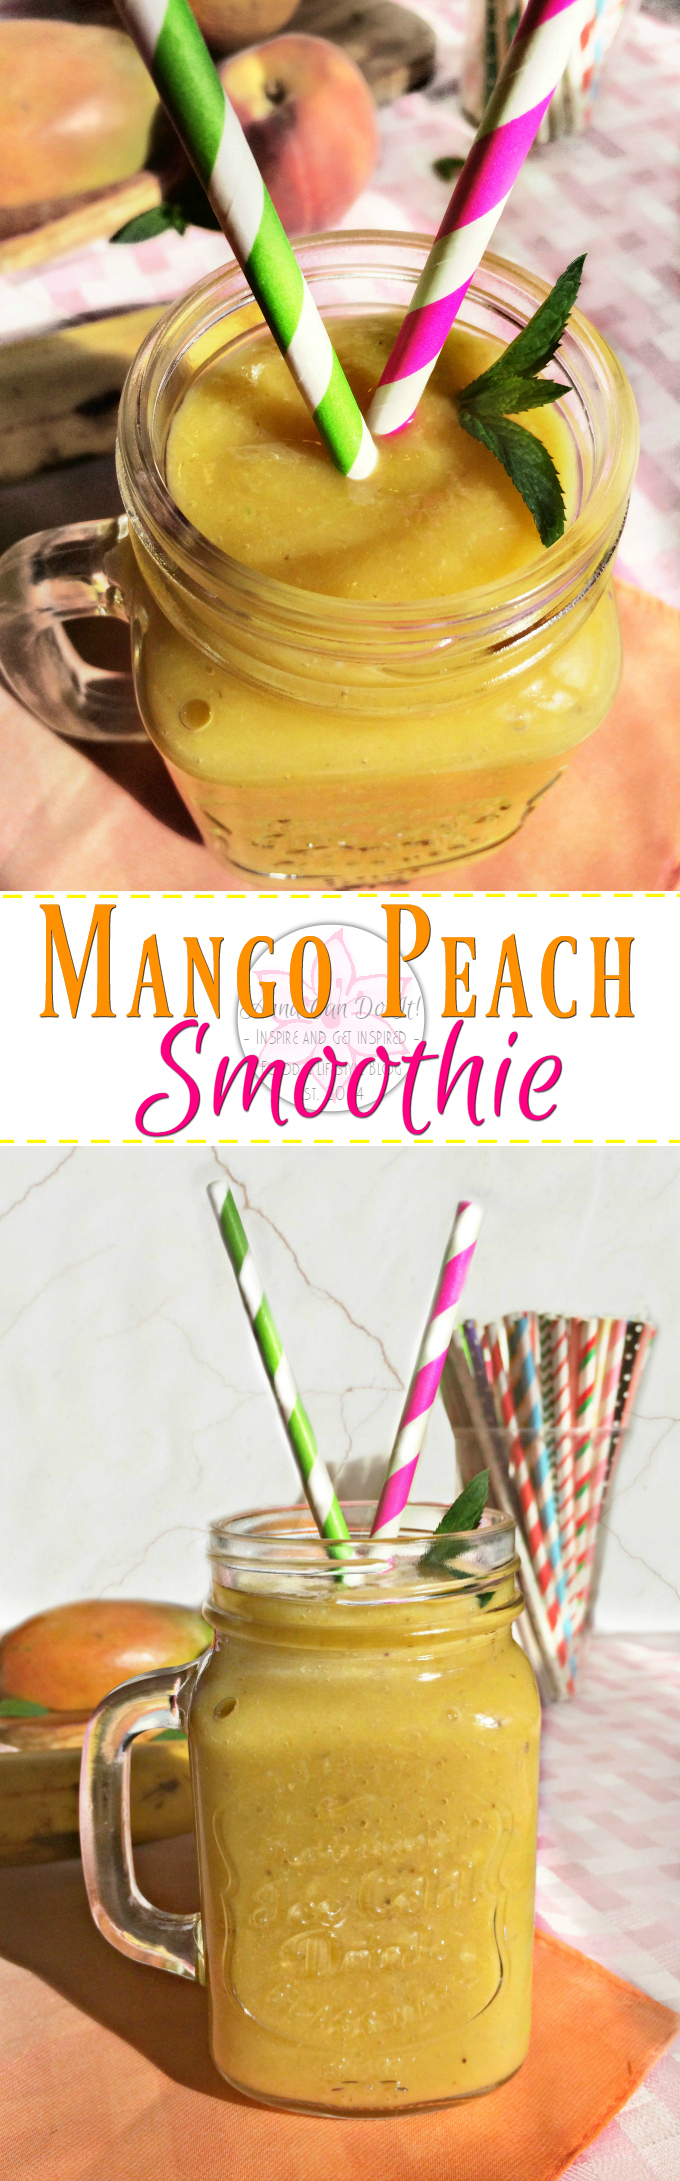 Mango Peach Smoothie - Anna Can Do It! * Mango Peach Smoothie is so refreshing, naturally sweet and delicious; perfect kickstart of the day and instant sunshine for rainy days too!